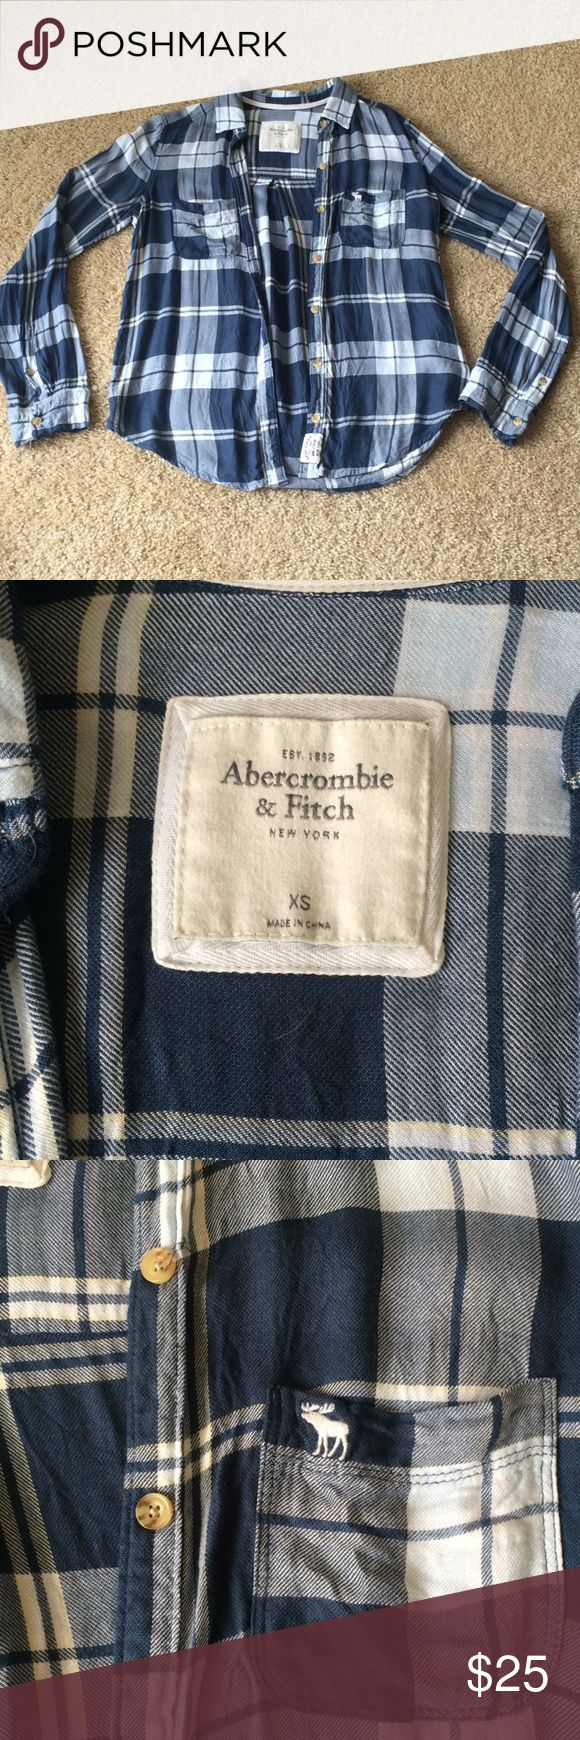 Blue Abercombie and Fitch plaid shirt Lightly worn blue plaid button up shirt from A&F. Doesn't have any flaws, loose fitting. This isn't flannel material, it's a lighter fabric perfect for spring. Abercrombie & Fitch Tops Button Down Shirts